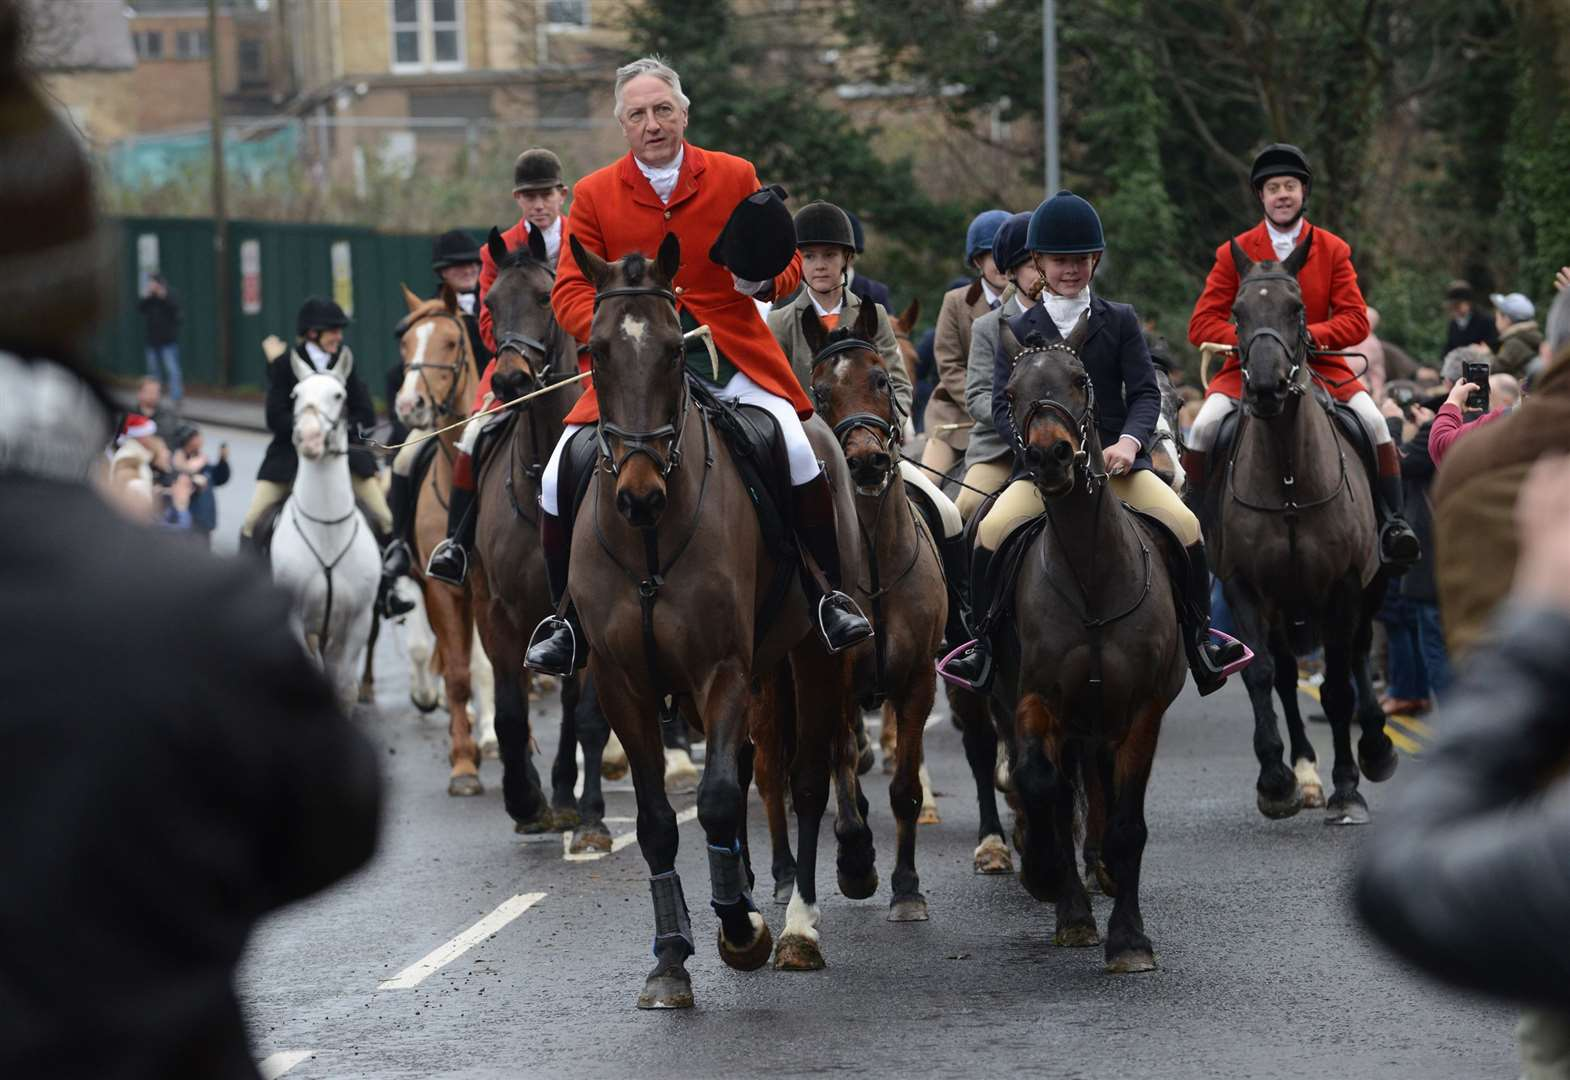 Pro and anti-fox hunting groups condemn 'sickening' threats against councillors